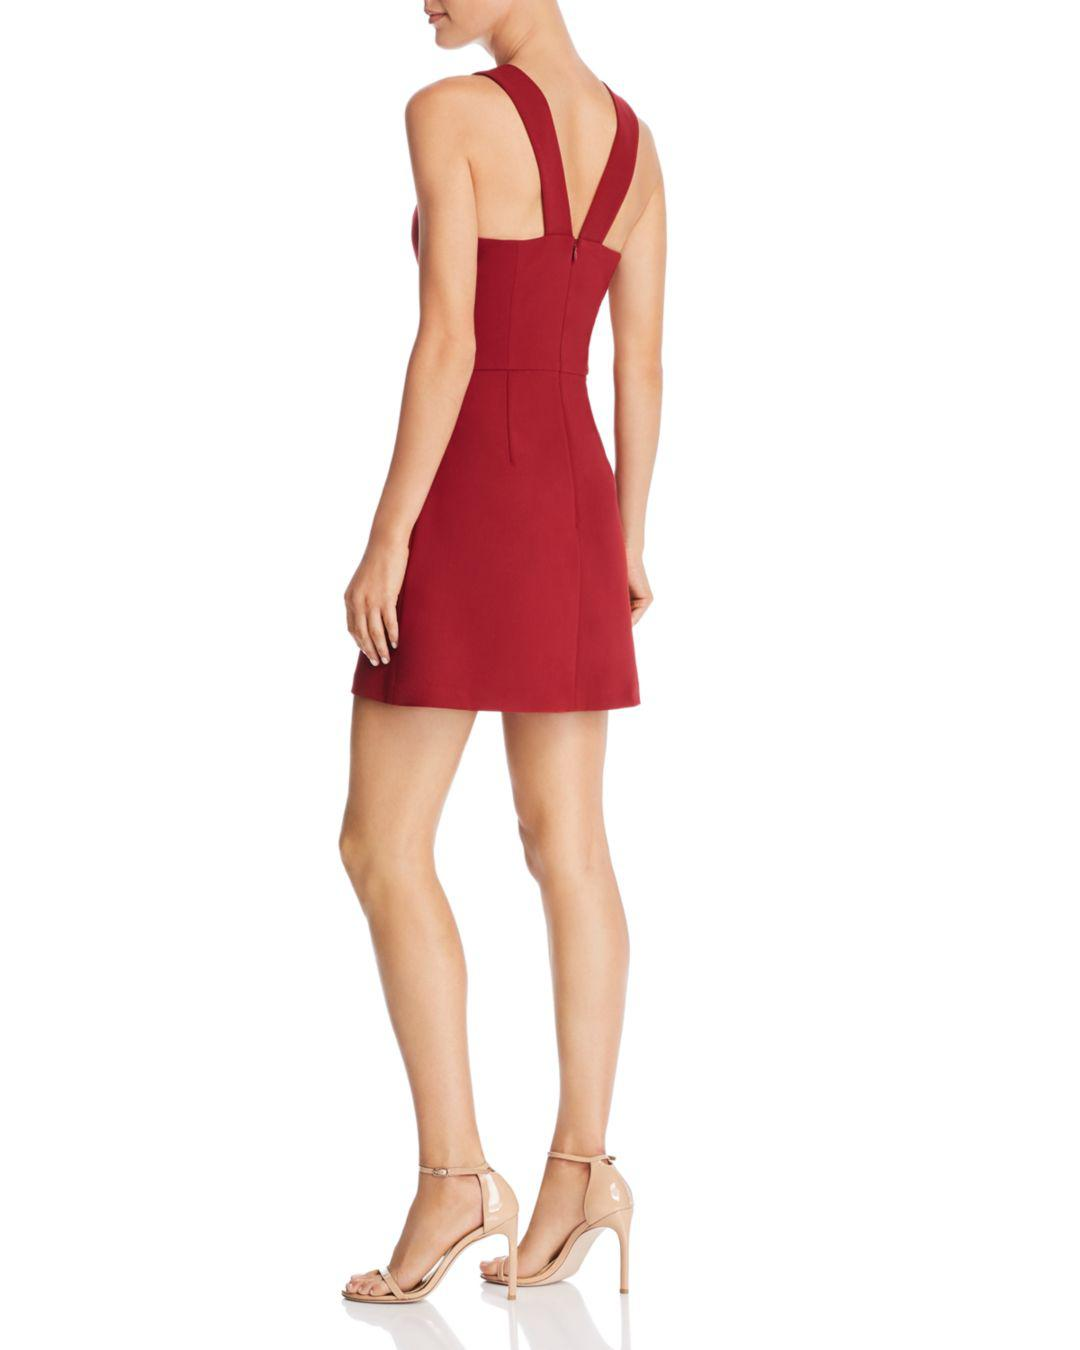 7c5772b4008 French Connection Whisper Light A-line Mini Dress in Red - Lyst